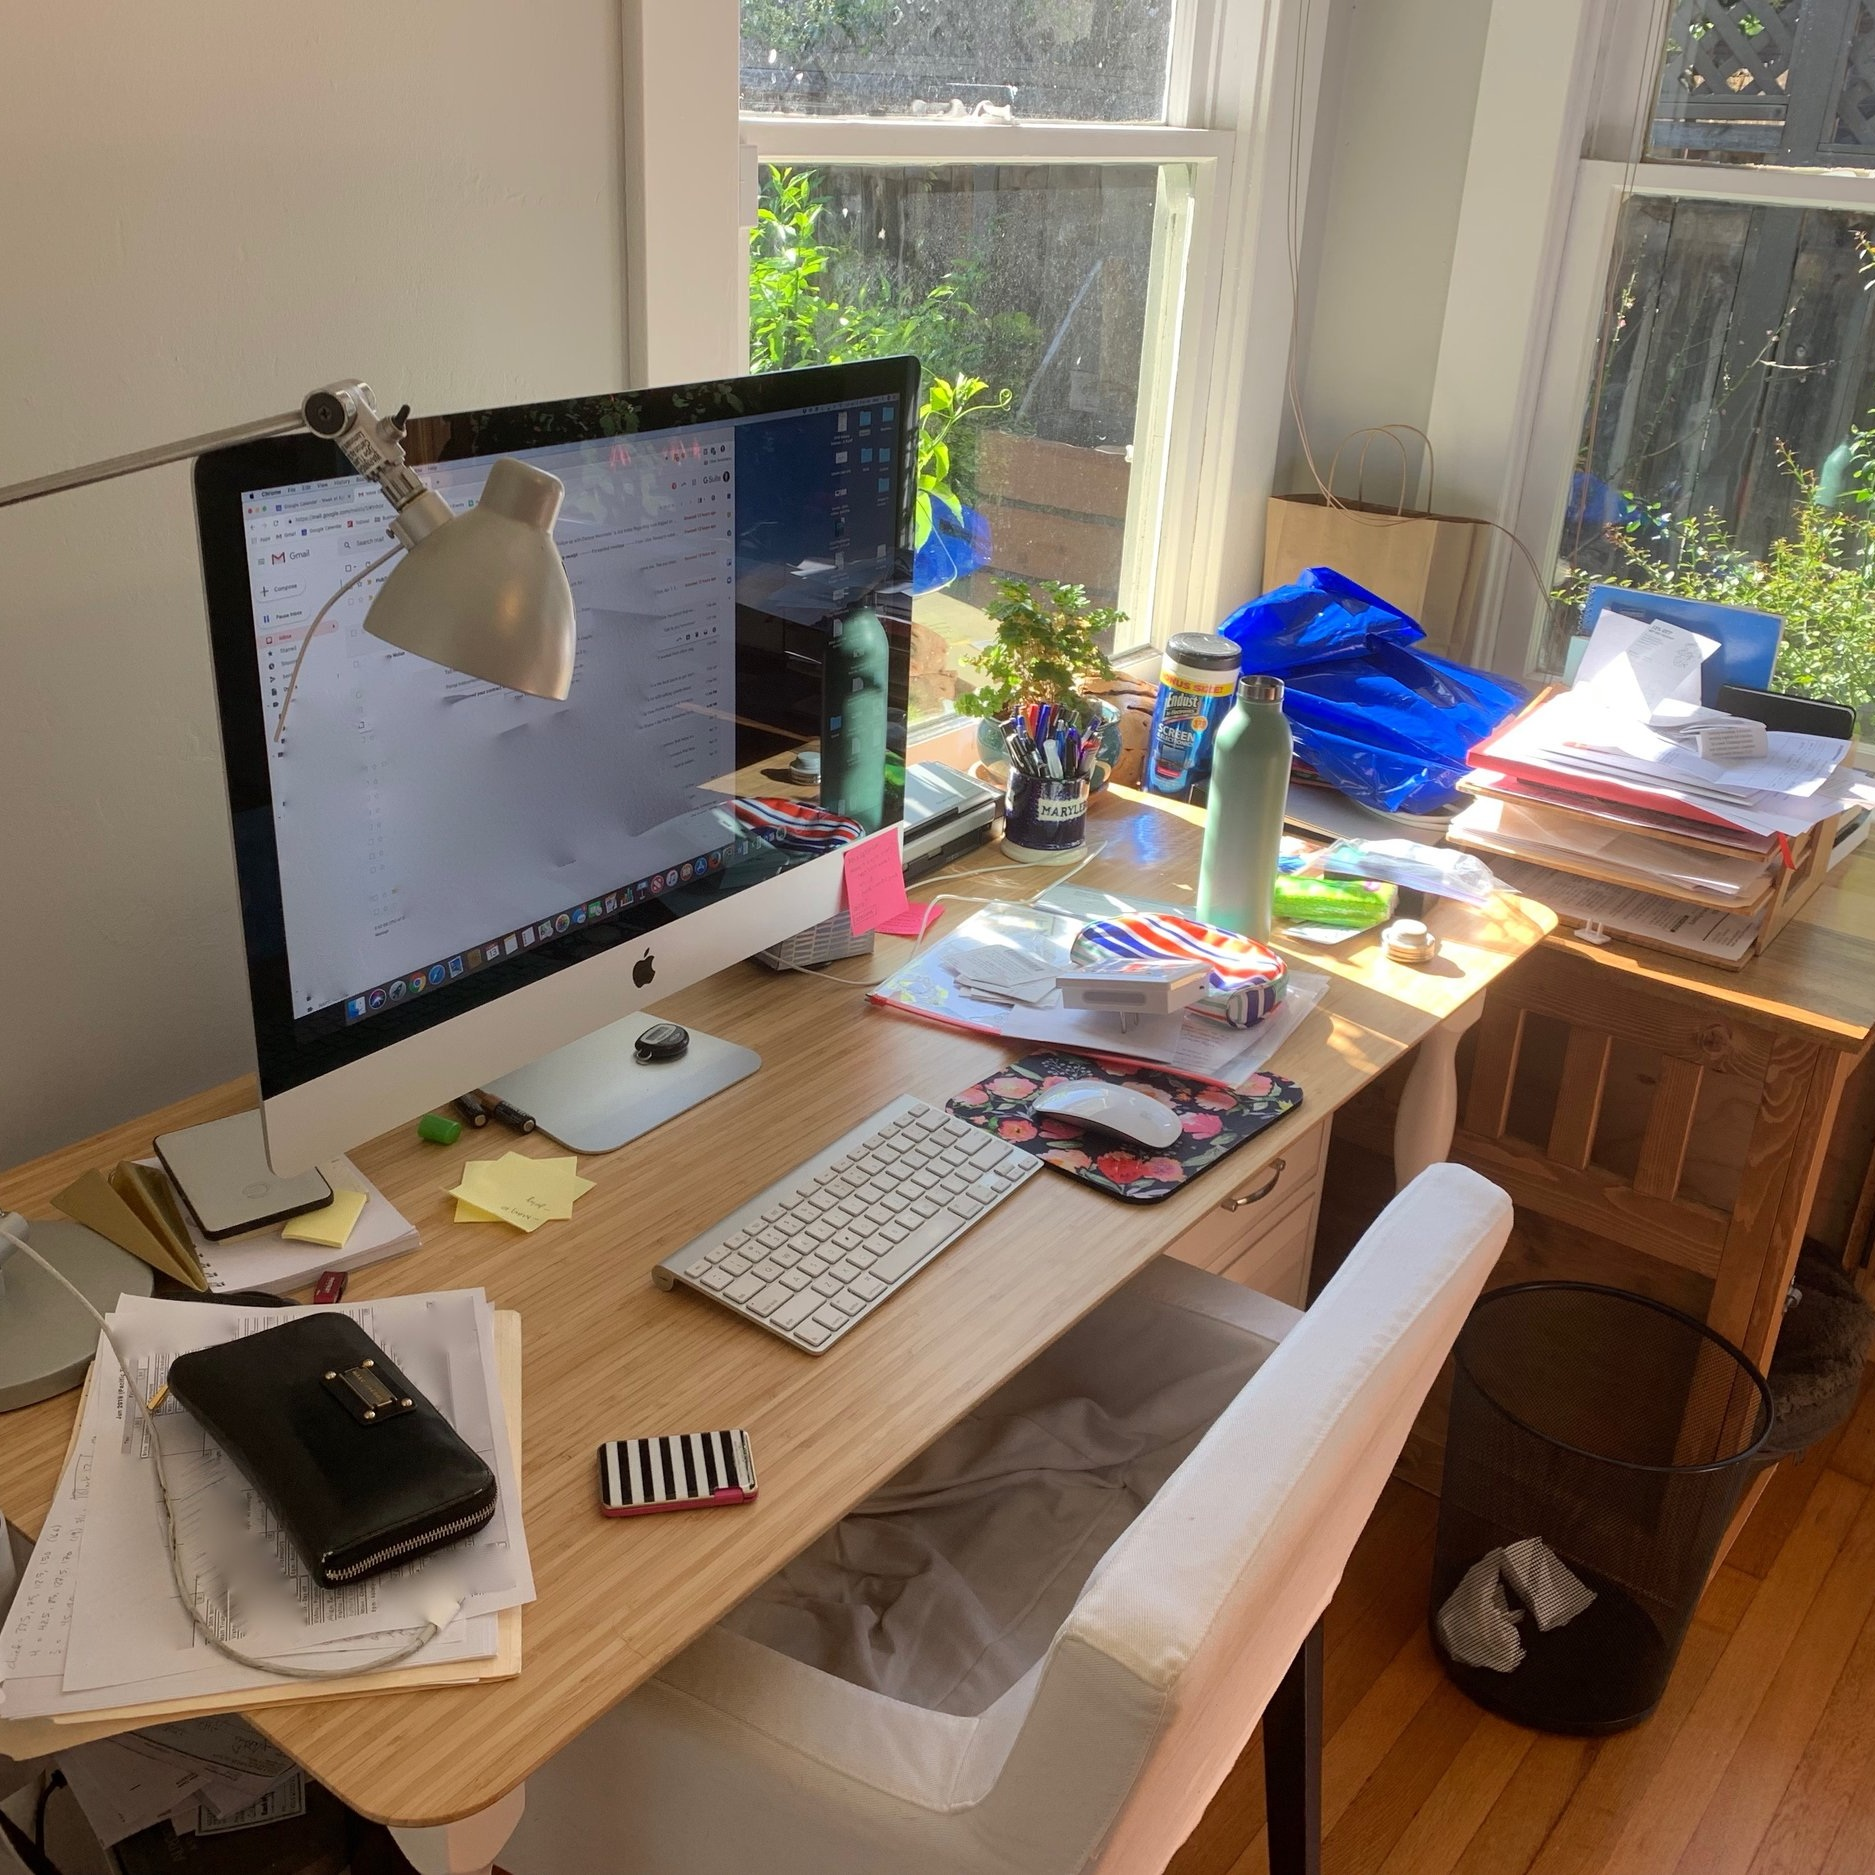 The before: My desk after two weeks of neglect.